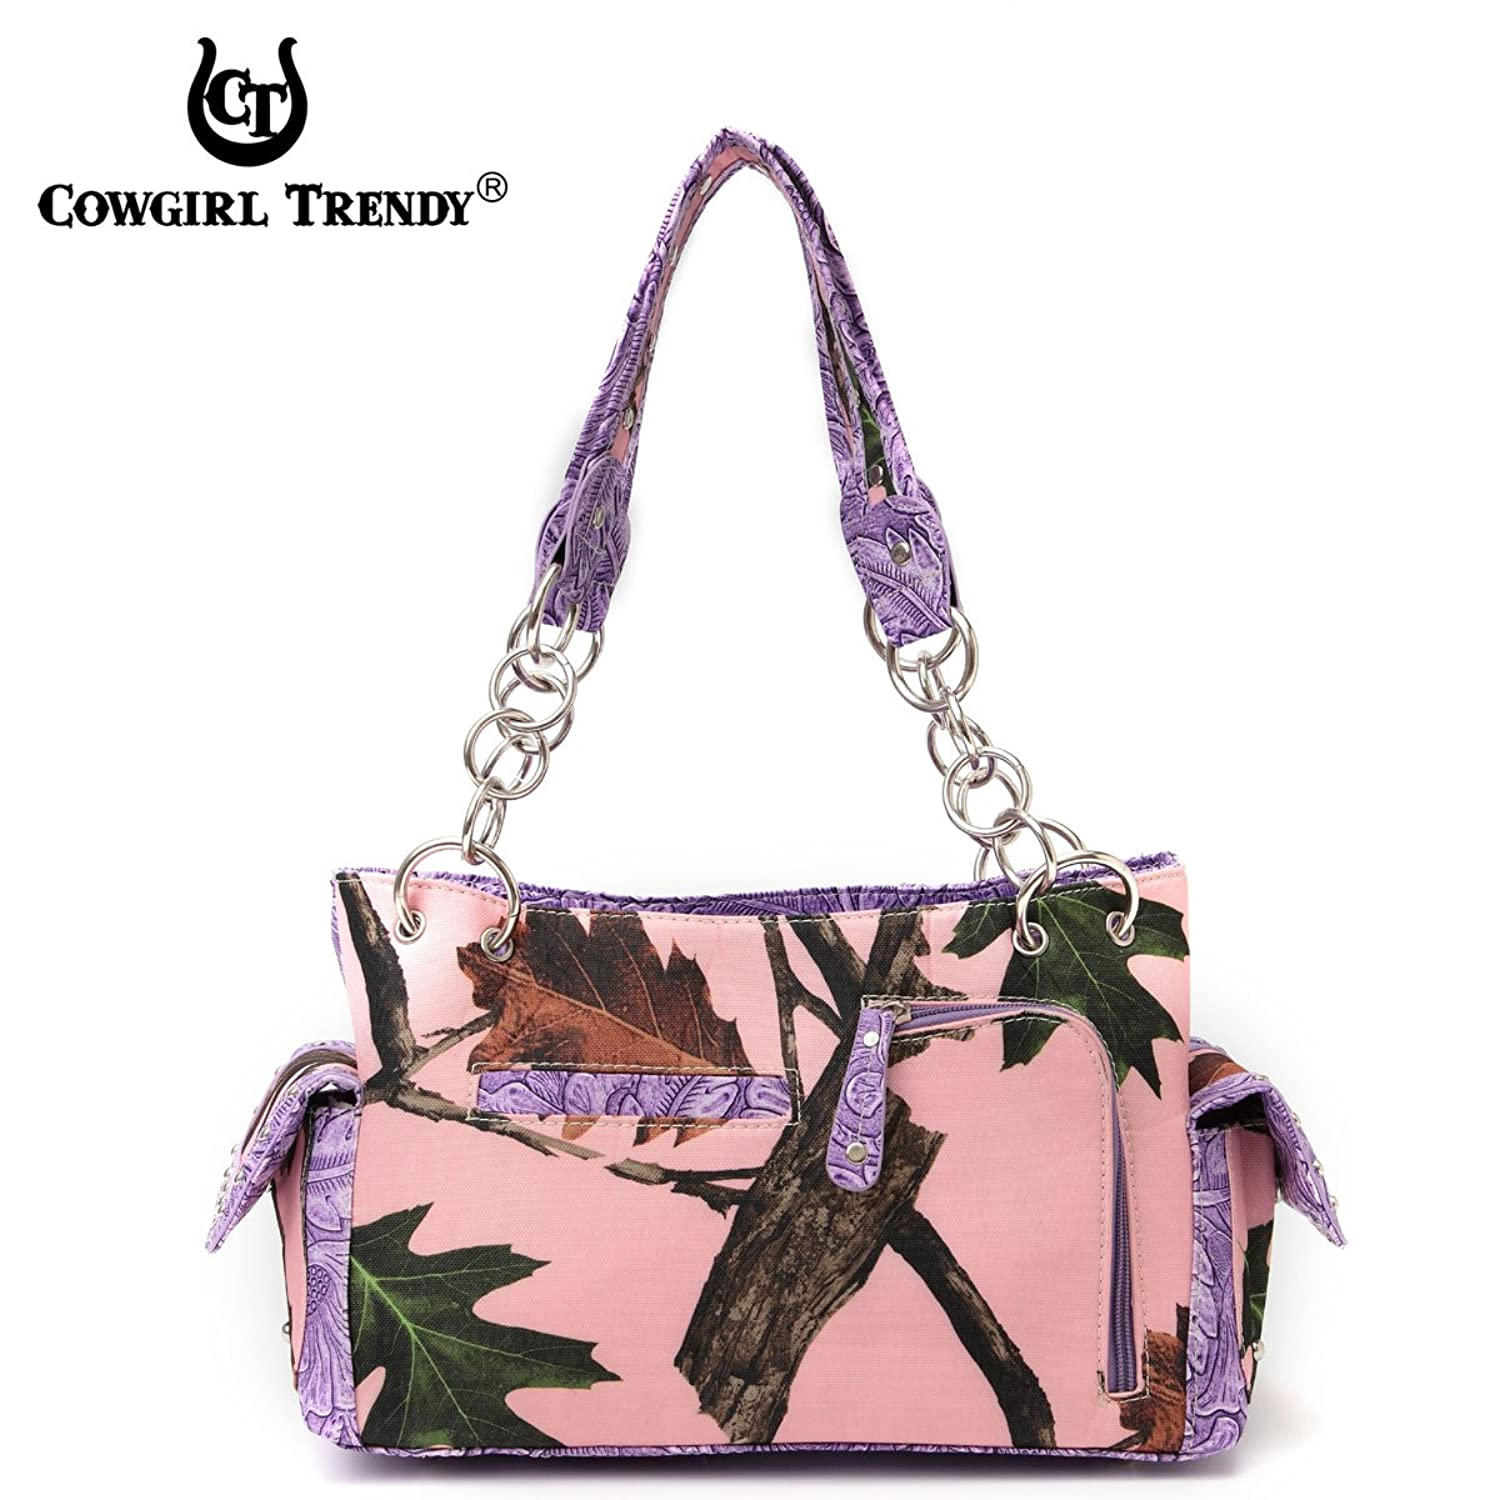 Cowgirl Trendy Western Concealed Carry Camouflage Cross Phone Case Purse Handbag Shoulder Bag Purple